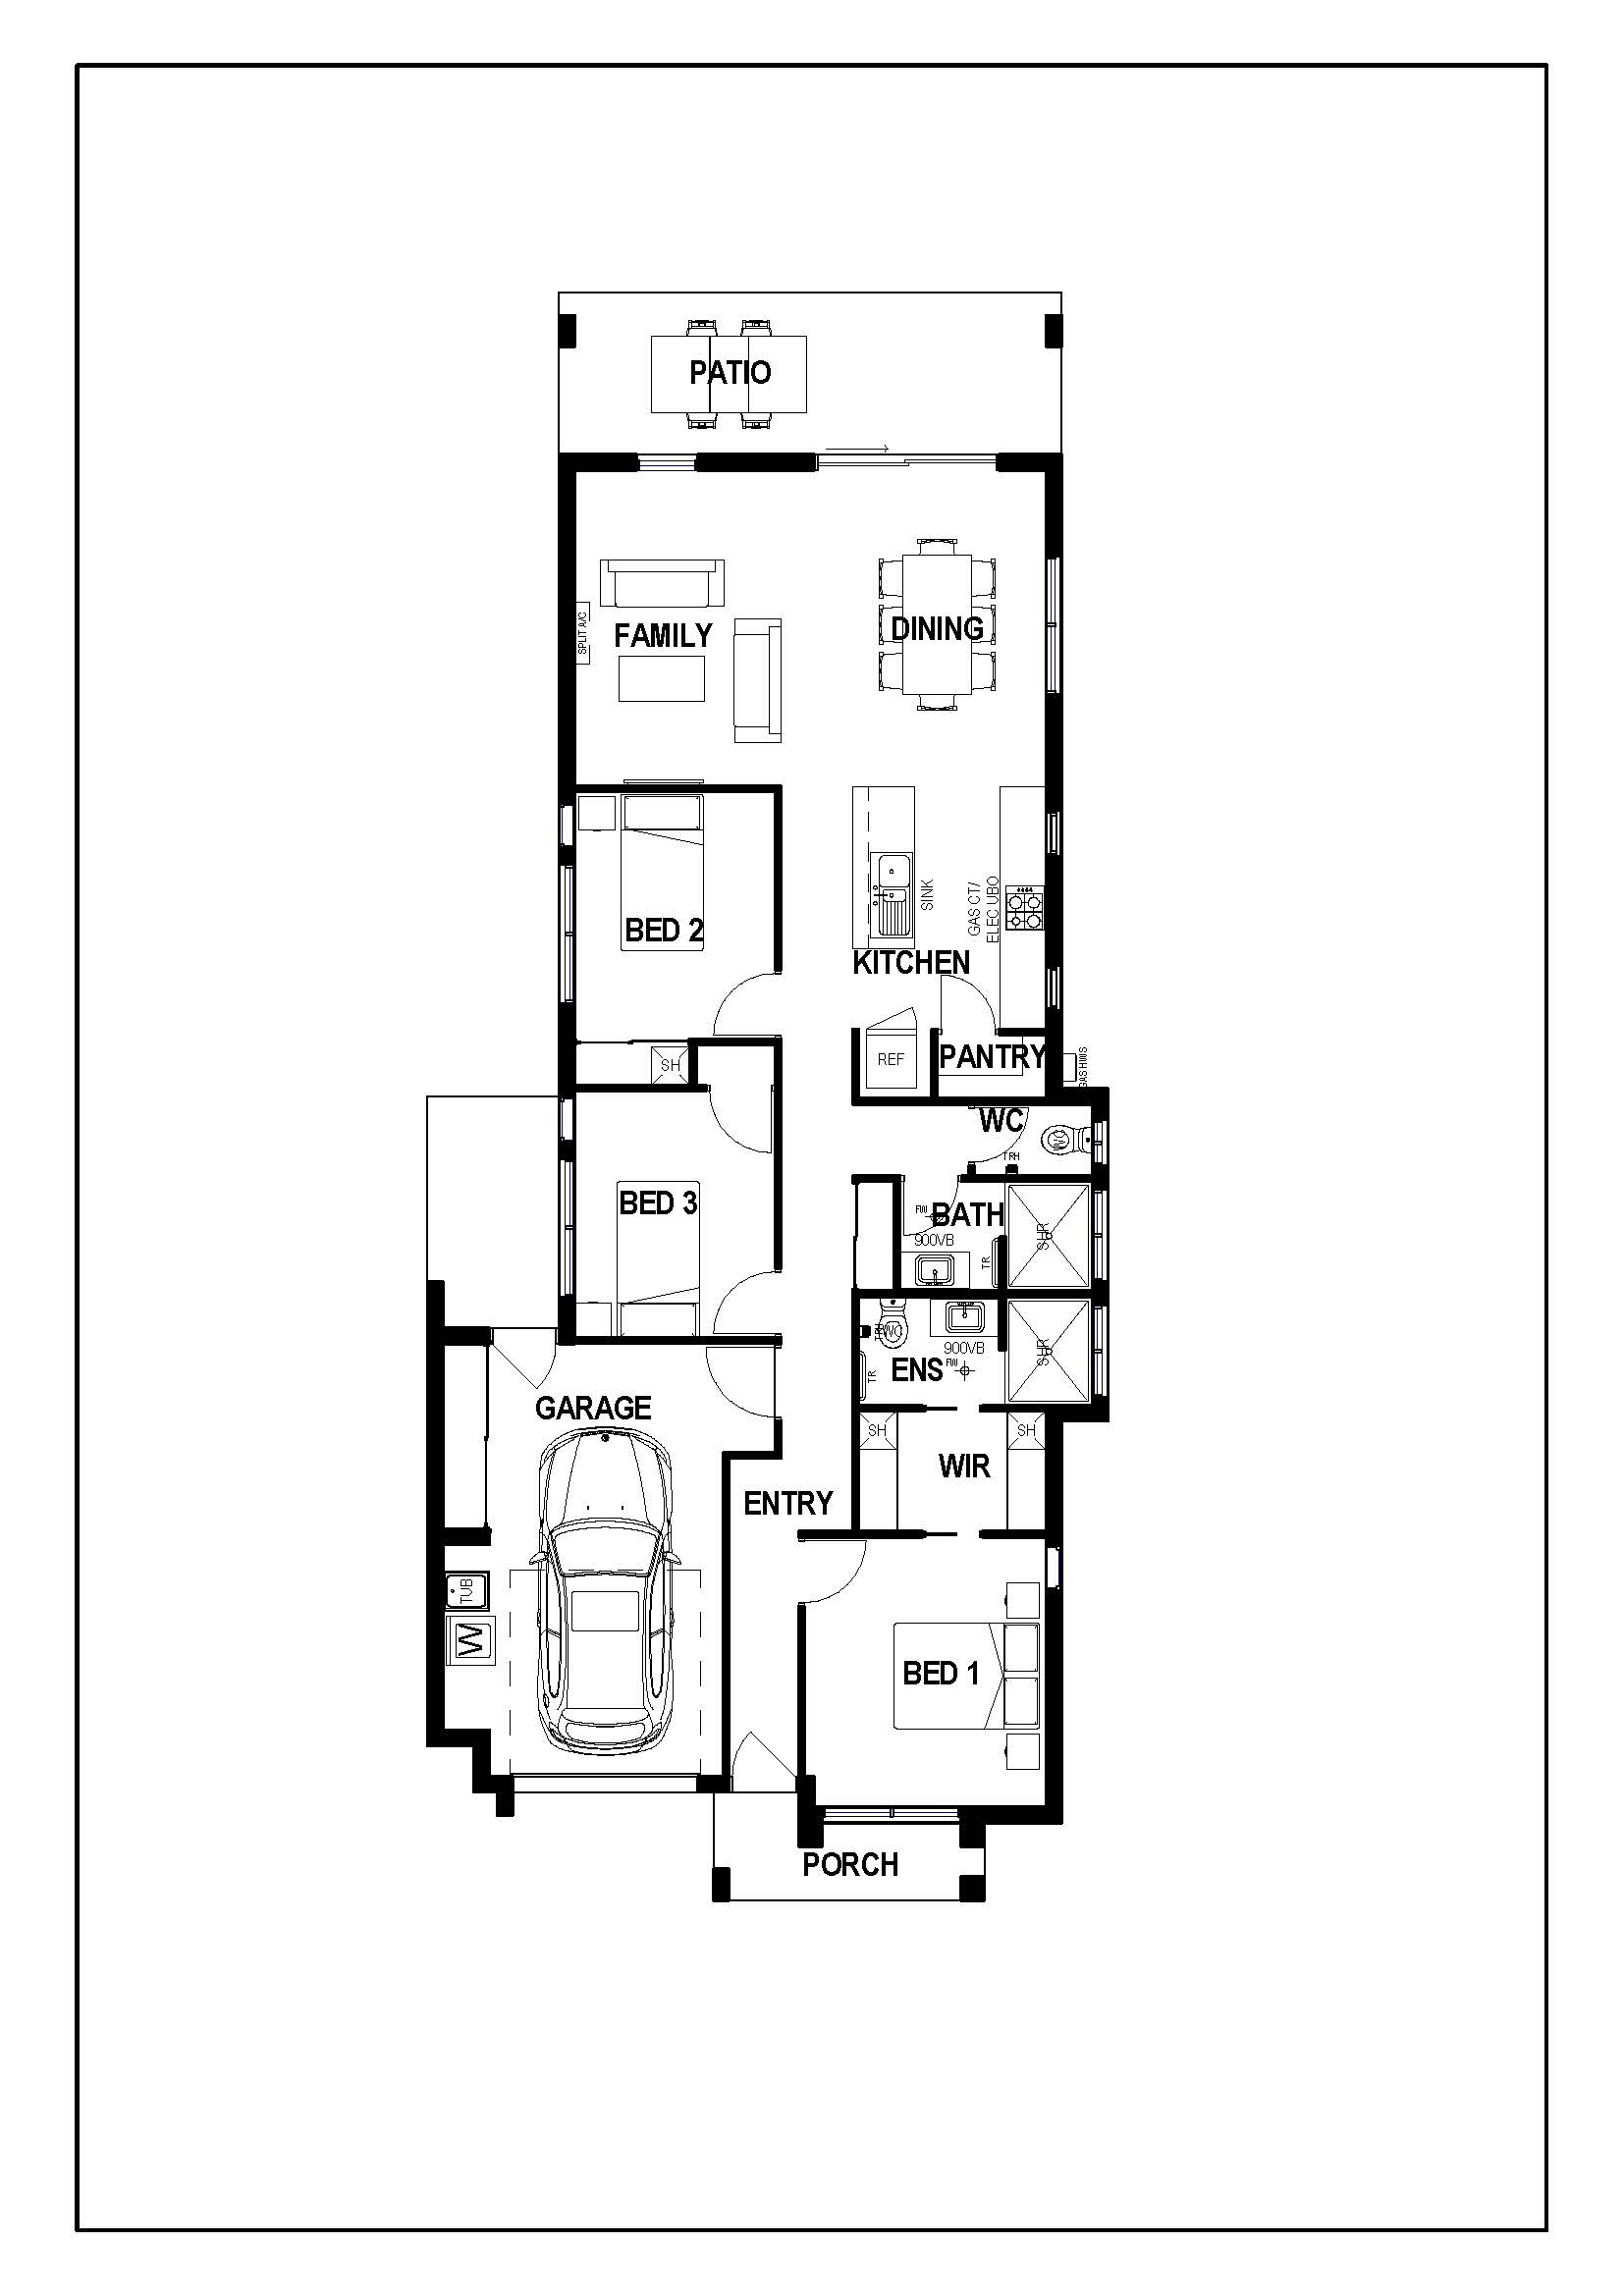 Kulmared A Floor Plan.jpg